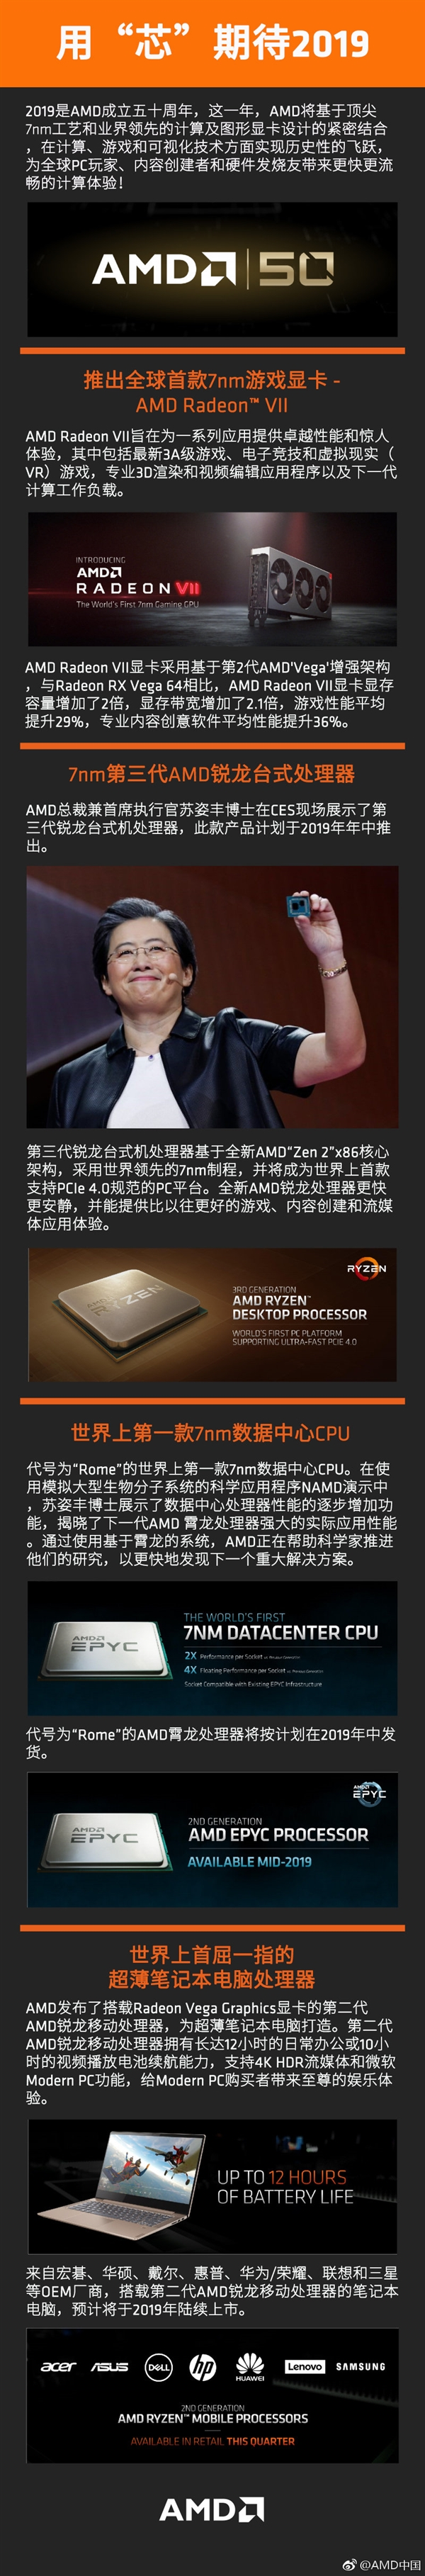 In 2019 it was 50 years since AMD! Official statement 7nm CPU / graphics card to bursting: historic leap